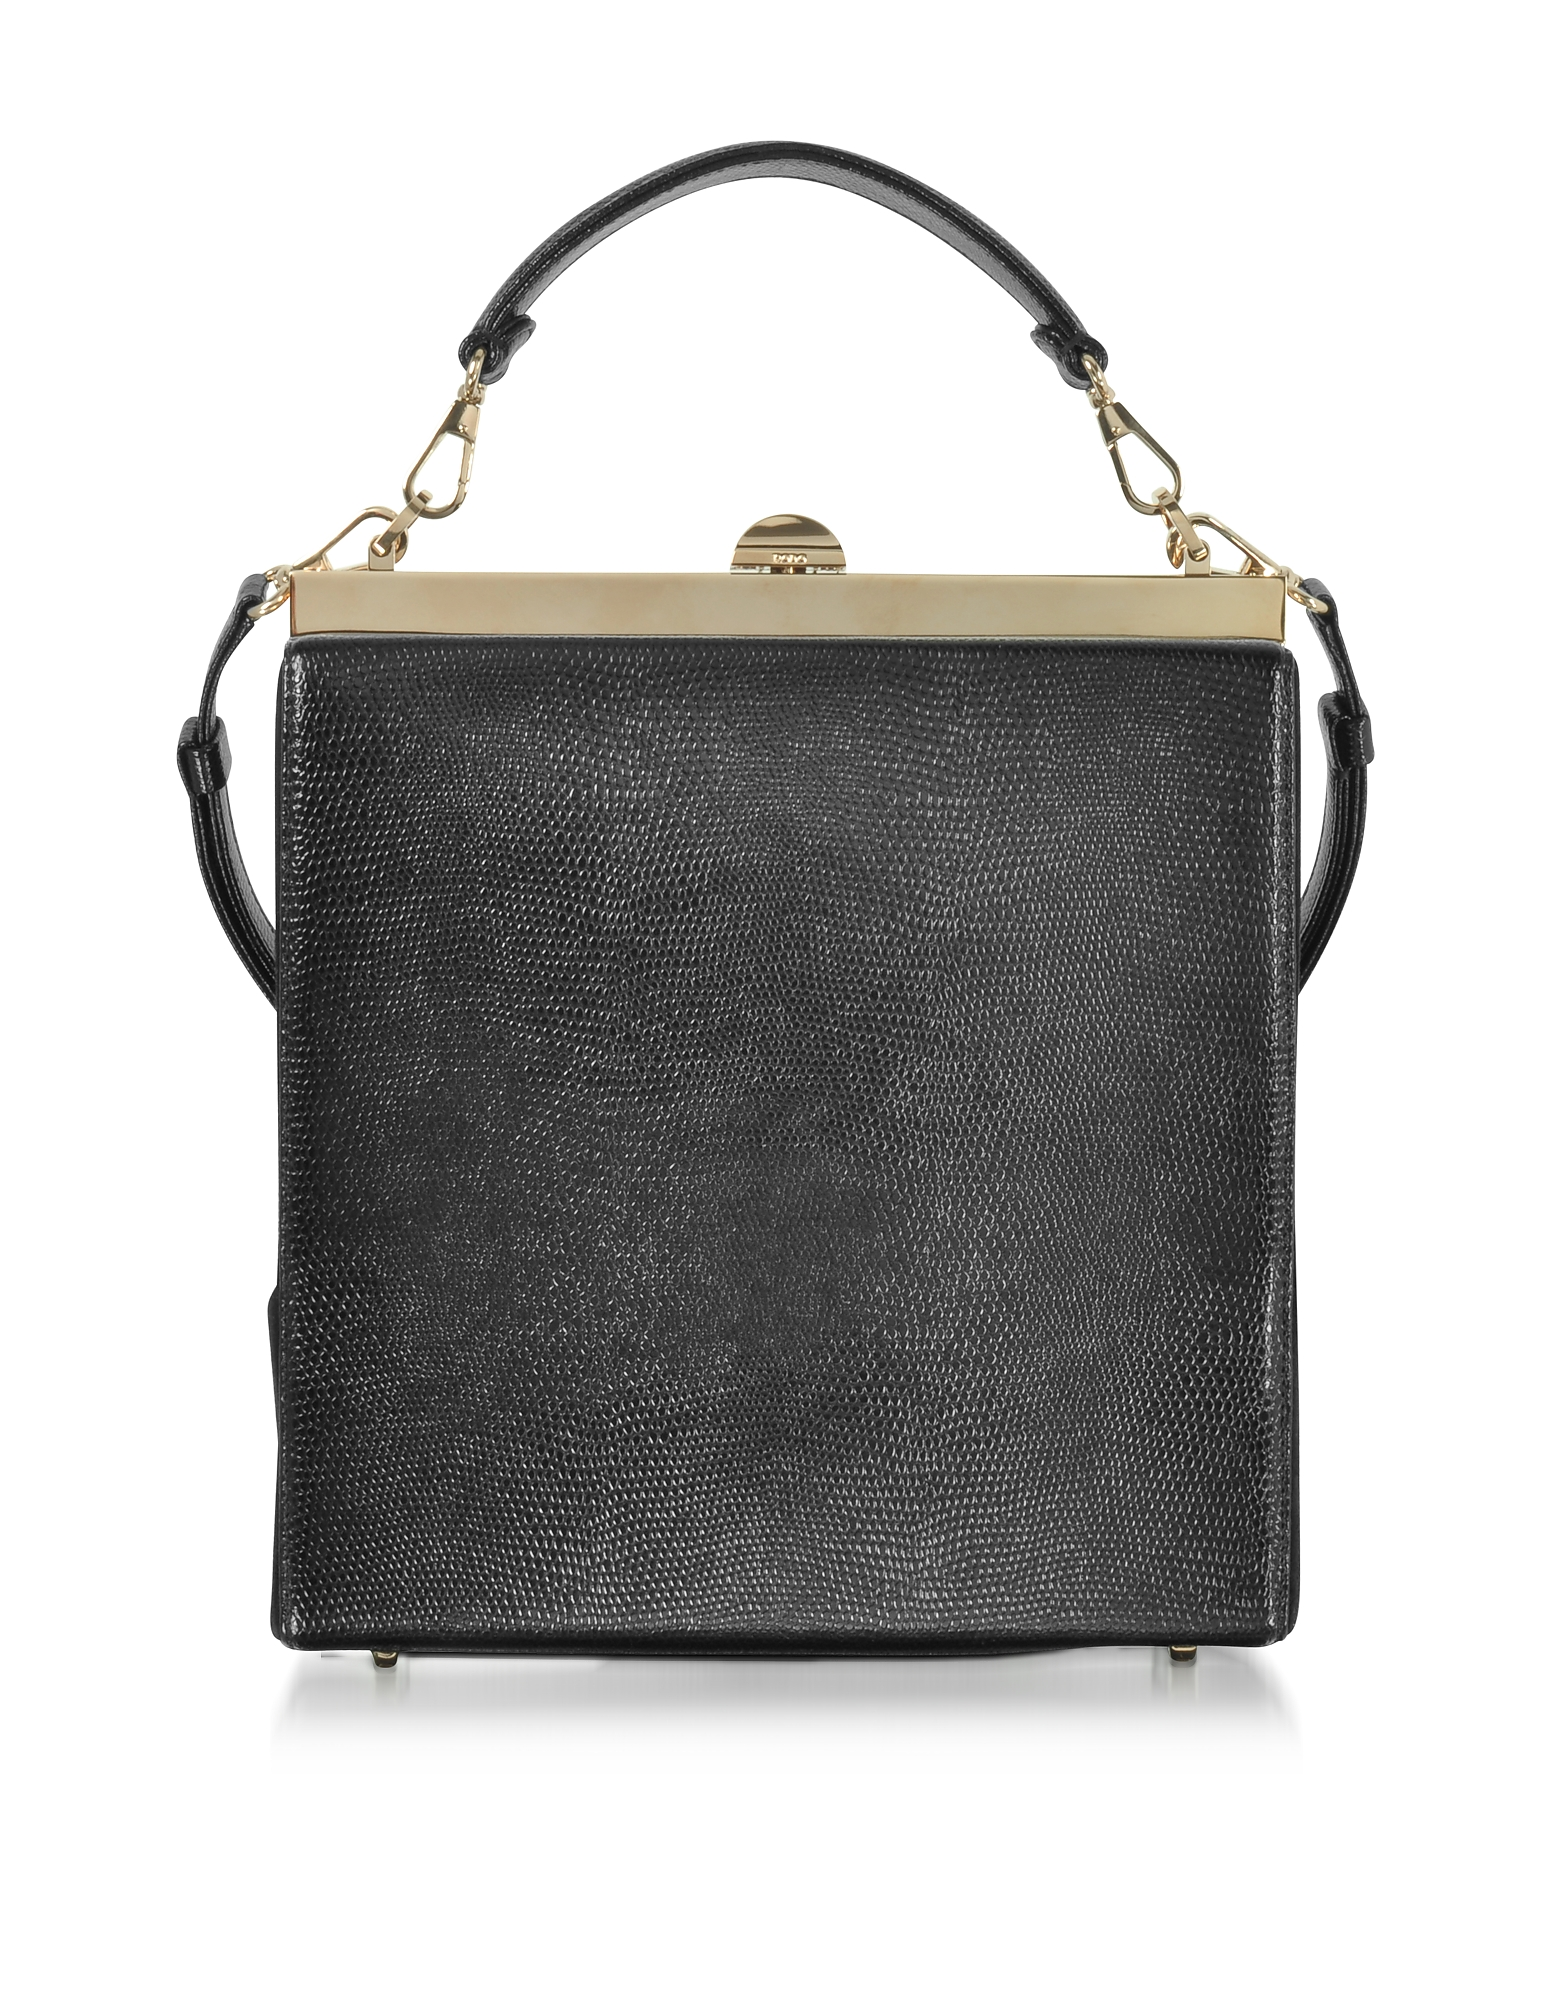 Rodo Handbags, Black Lizard Embossed Leather and Suede Tote Bag